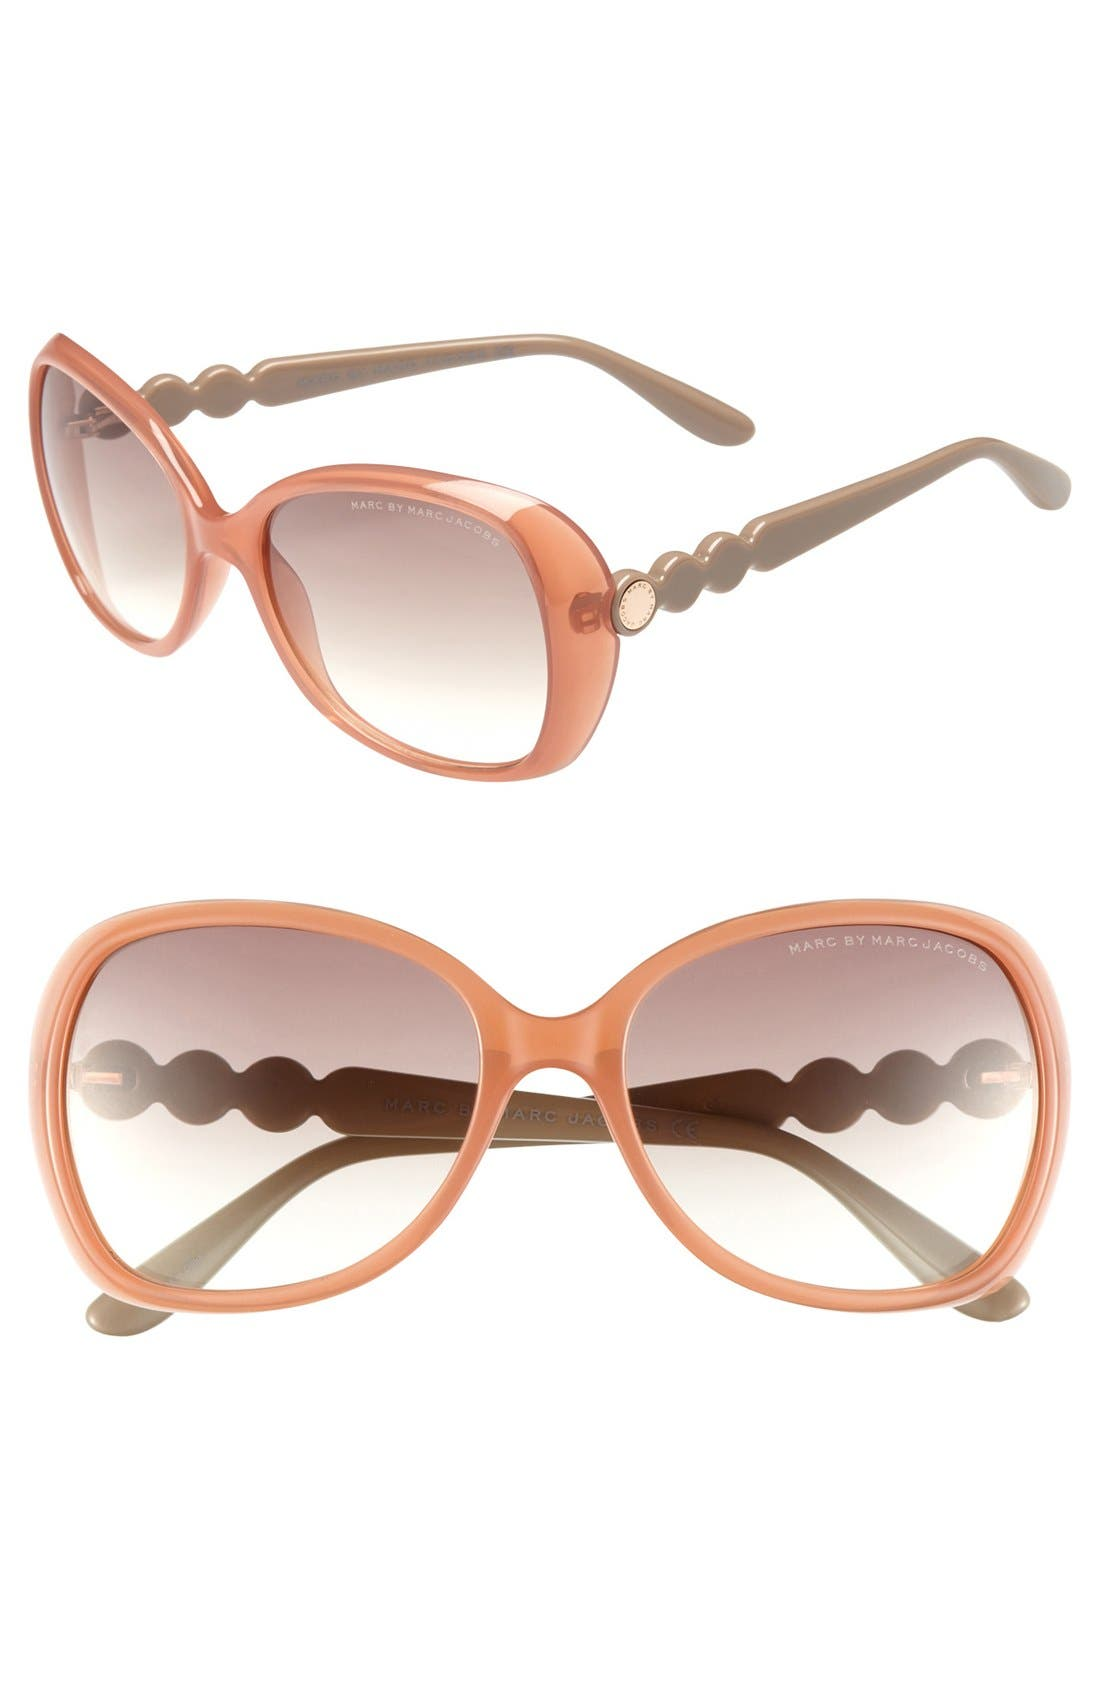 Alternate Image 1 Selected - MARC BY MARC JACOBS 56mm Oversized Sunglasses